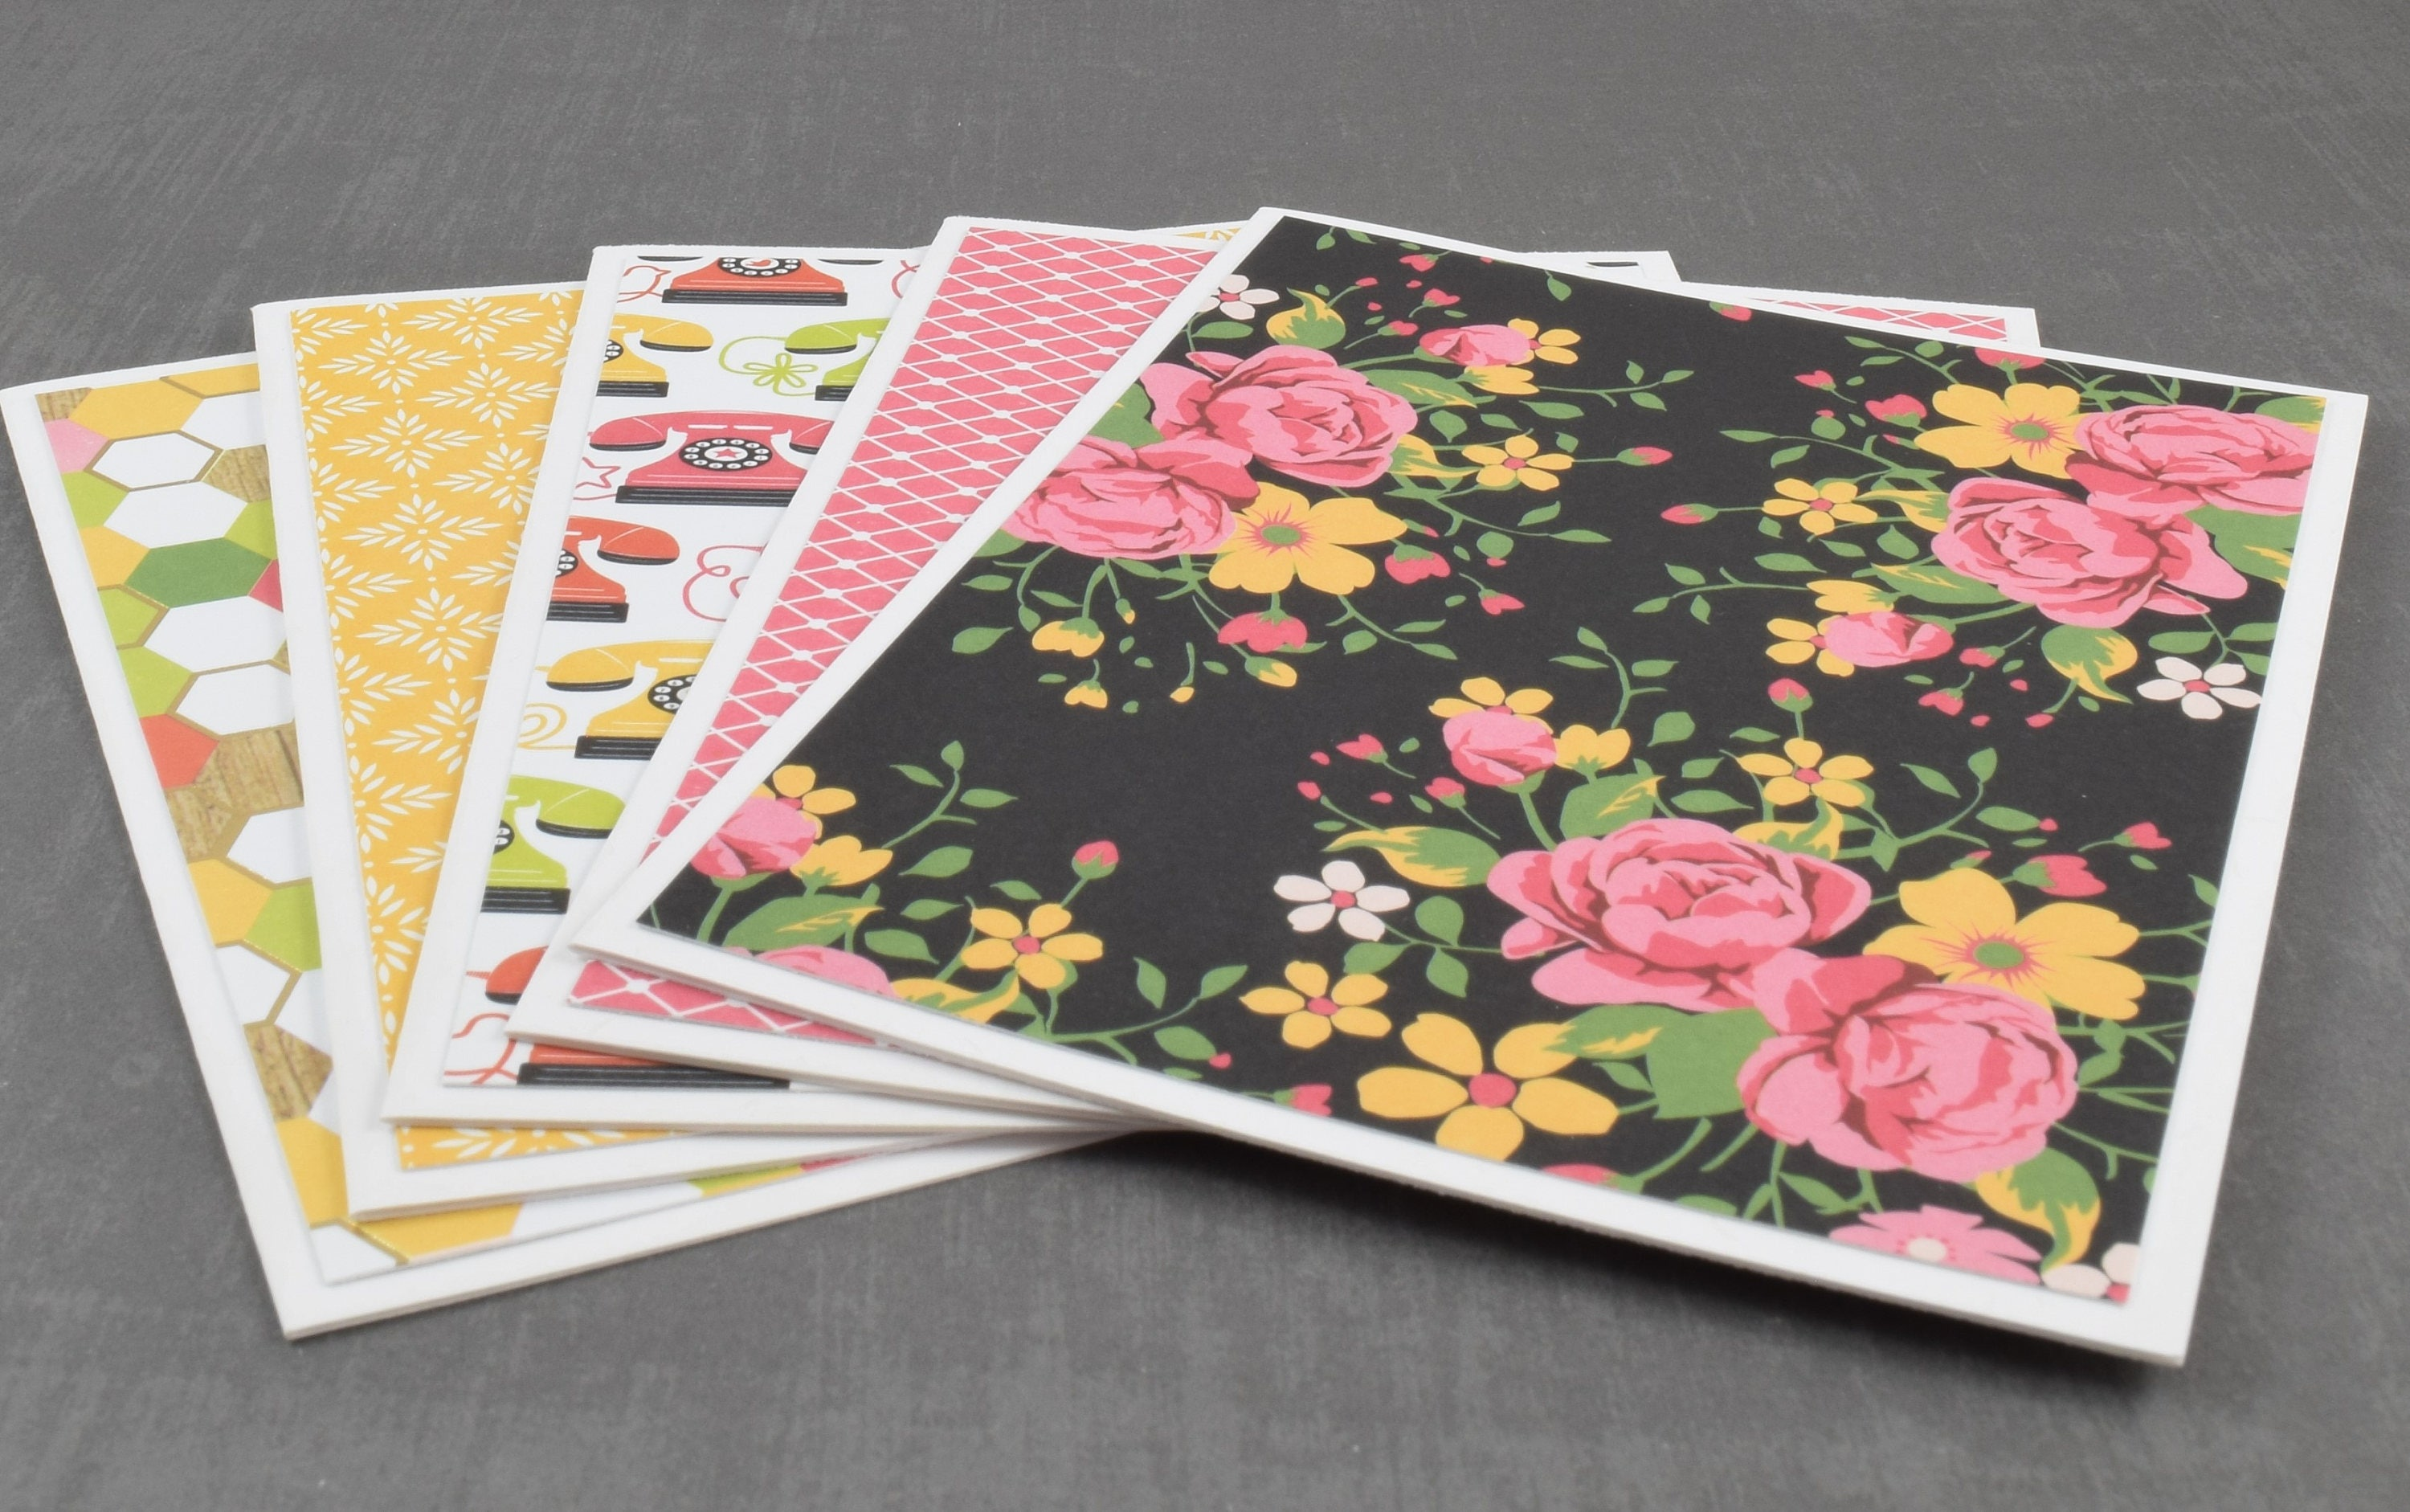 Flower cards retro cards pack of greeting cards assorted zoom kristyandbryce Image collections